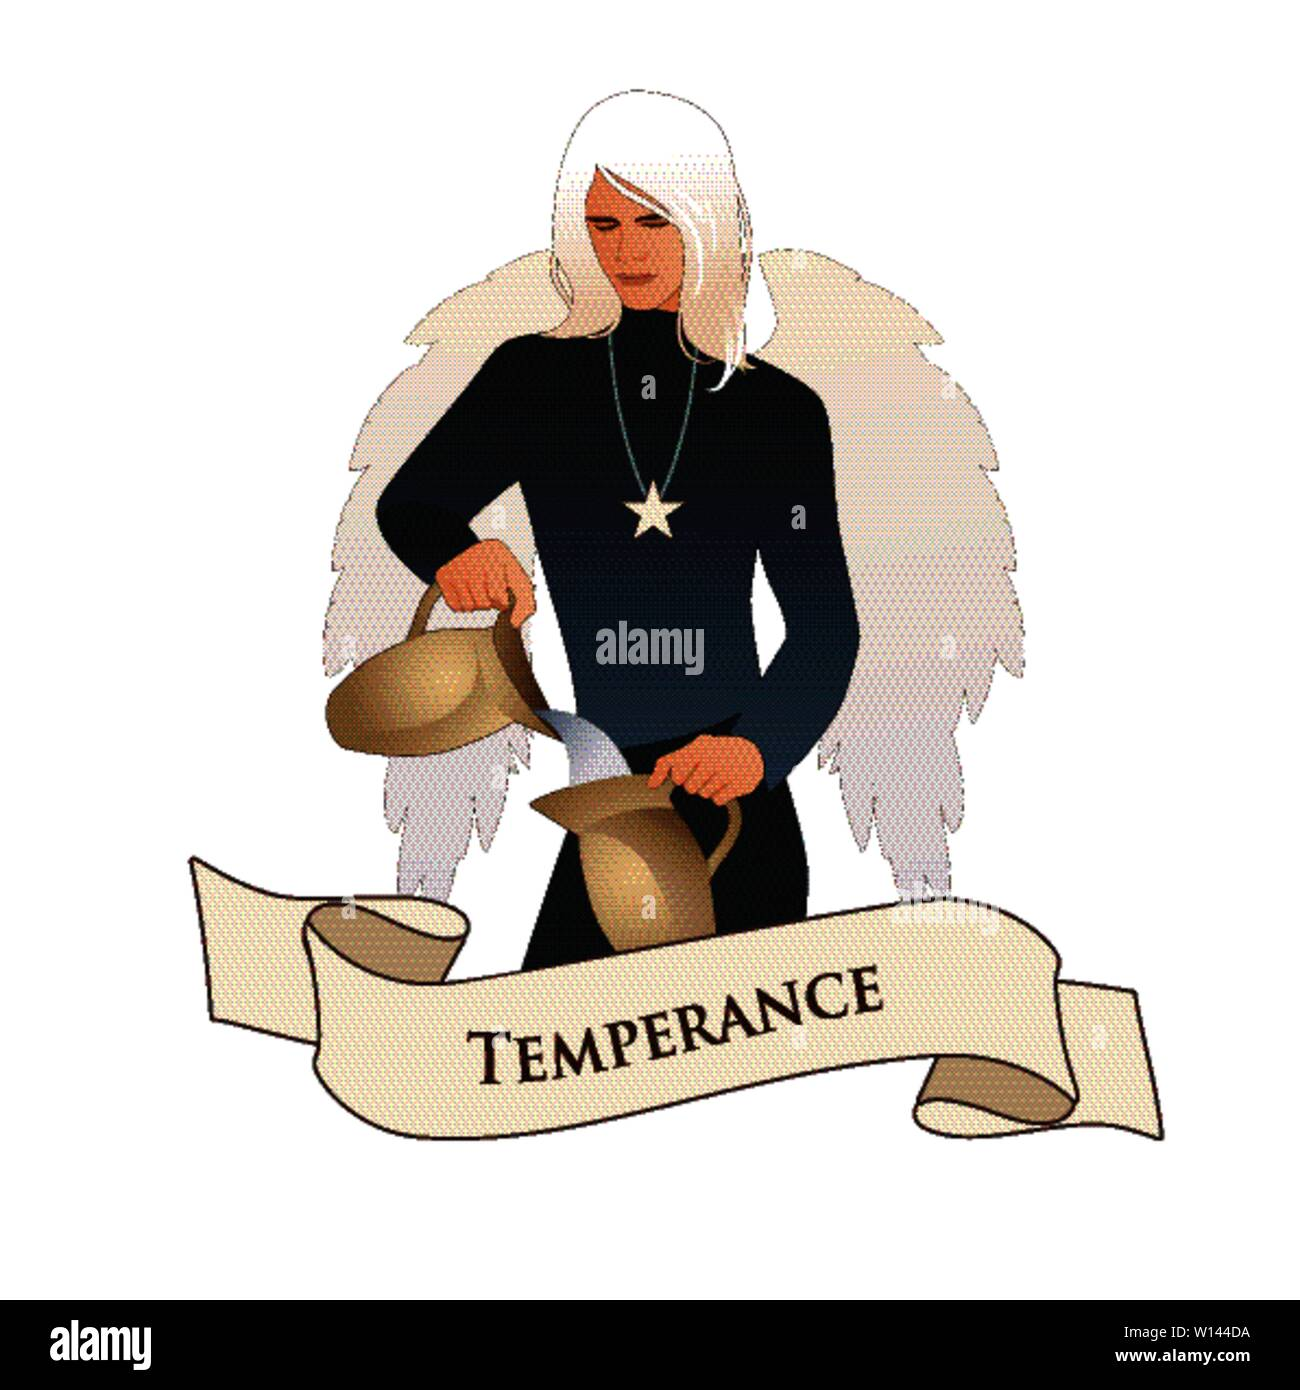 Major Arcana Emblem Tarot Card. Temperance. Angel with appearance and clothes of young man, great wings, hair fair, pouring water from one jug to anot - Stock Image